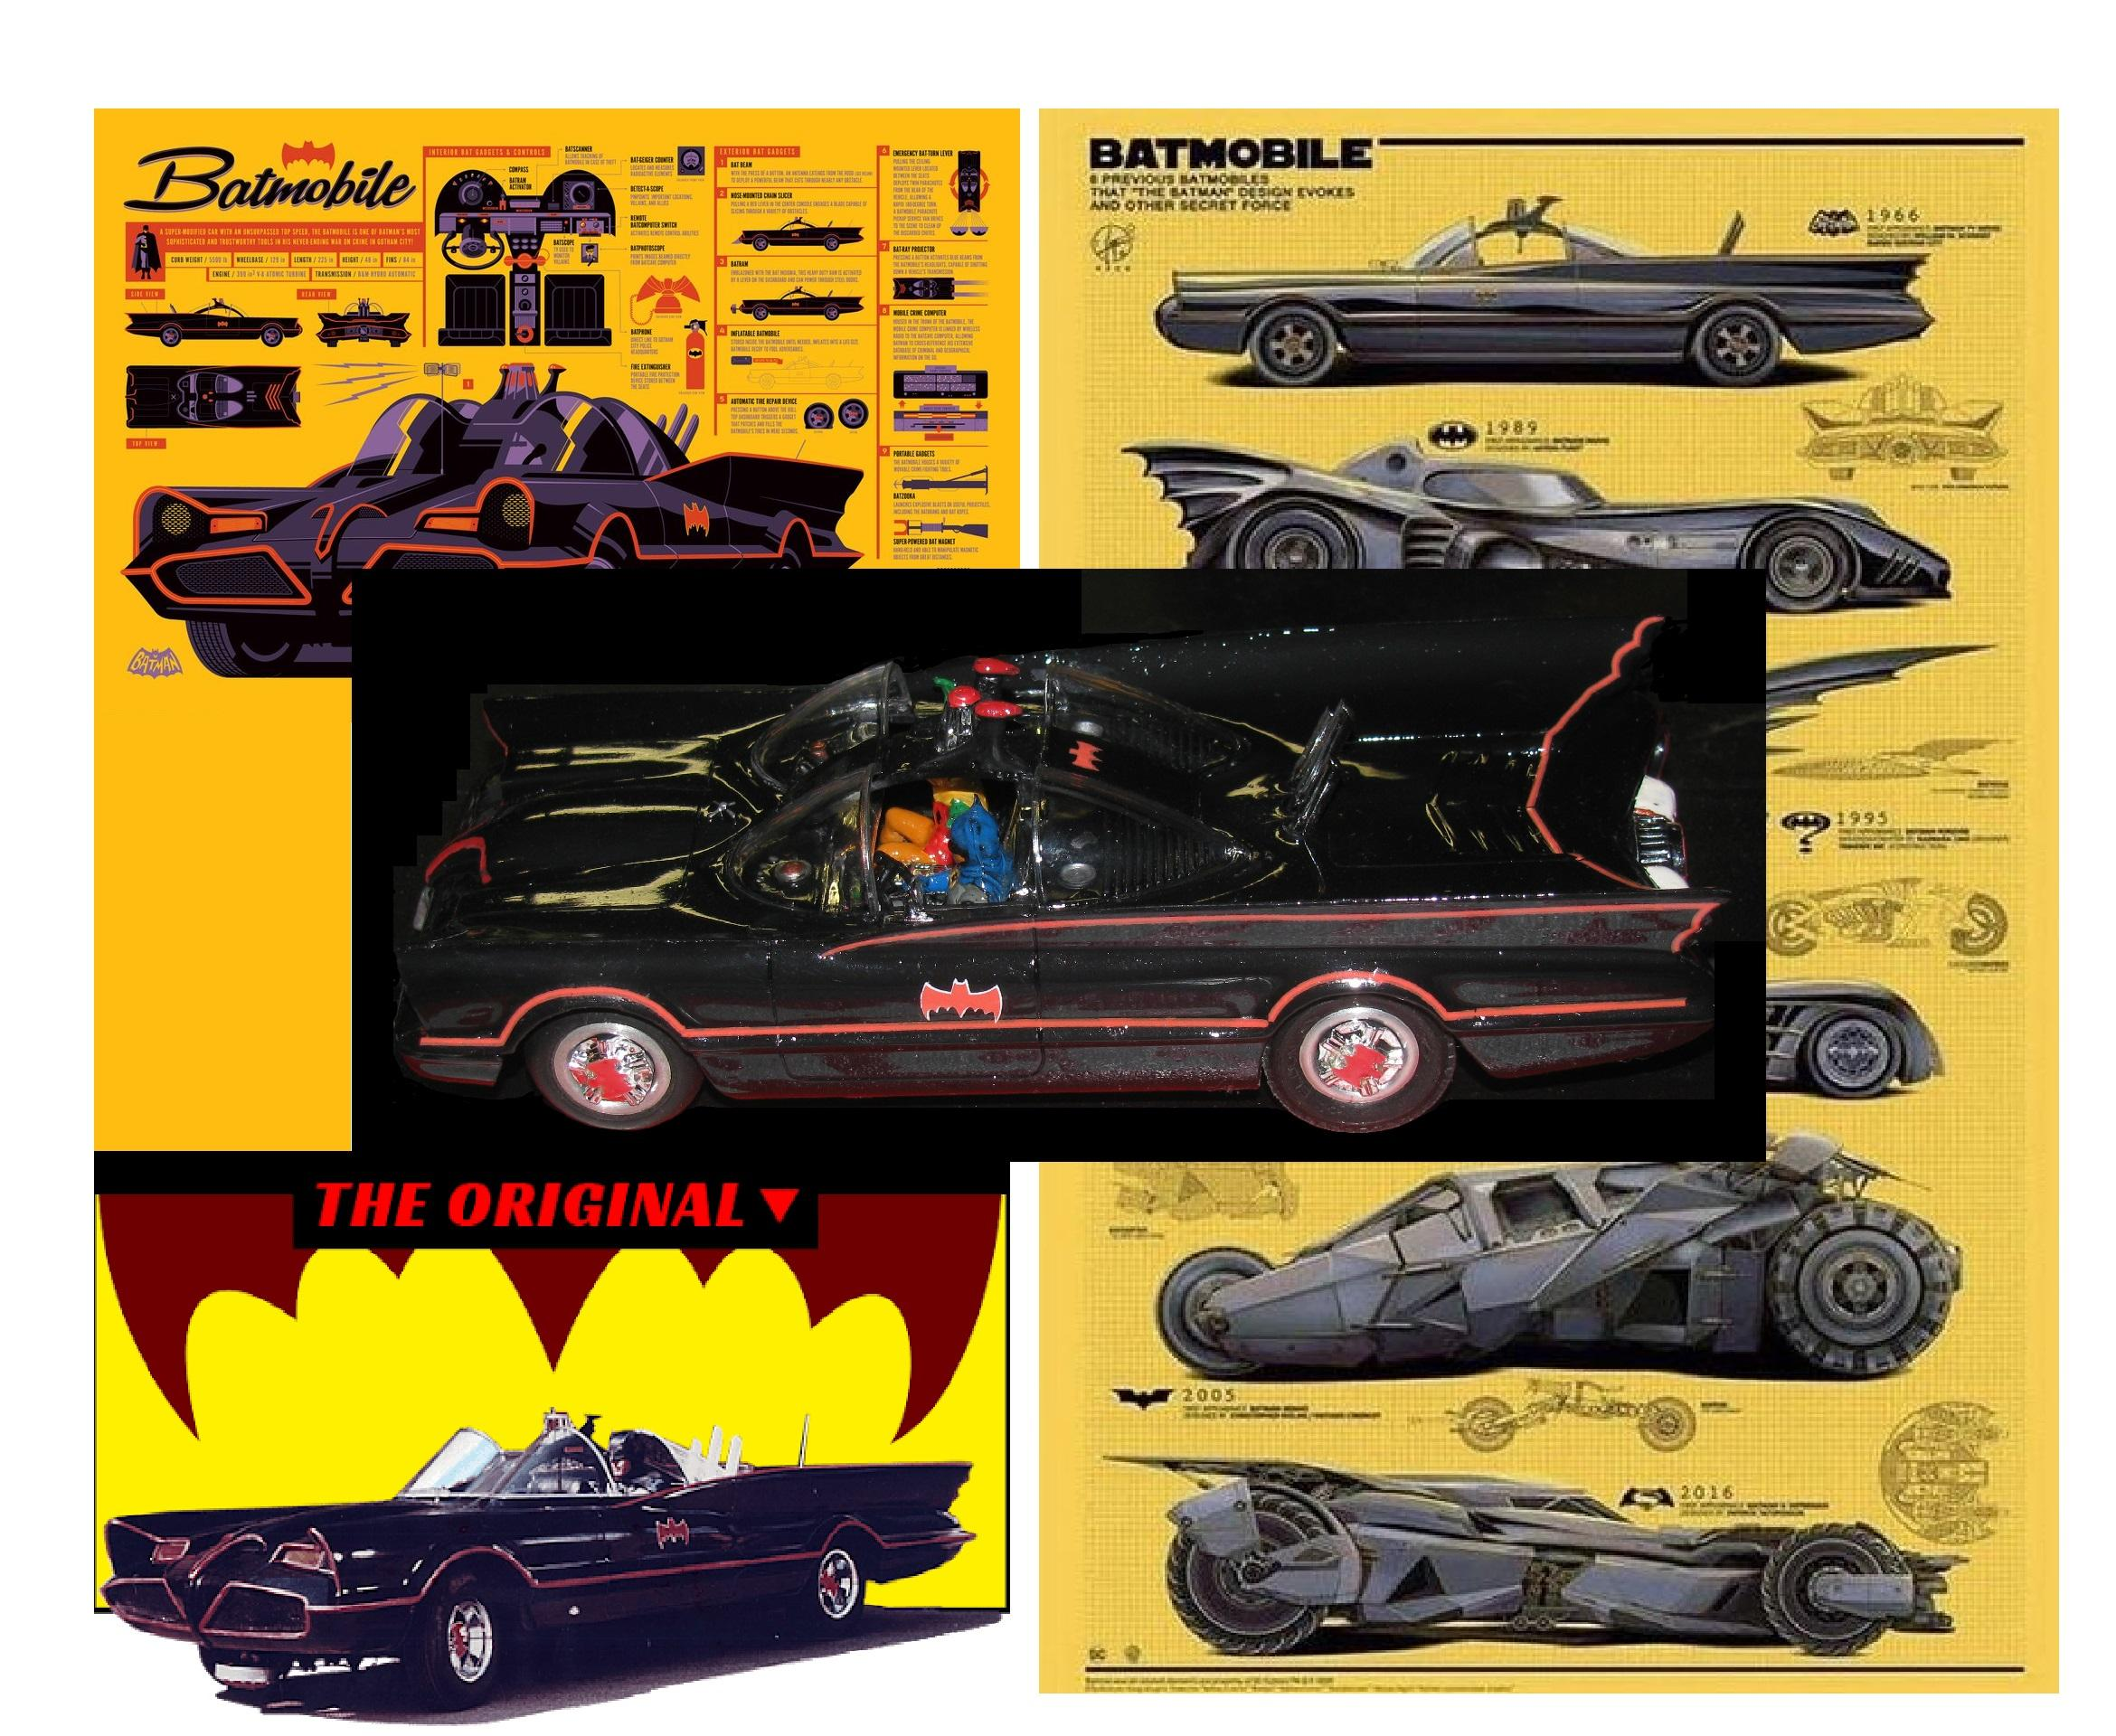 * SOLD* * SPECIAL PRICE FOR JOE K. ONLY *  Original Batmobile Slot Car with Batman & Robin Very Rare Limited Edition 1:32 to 1:25 Scale